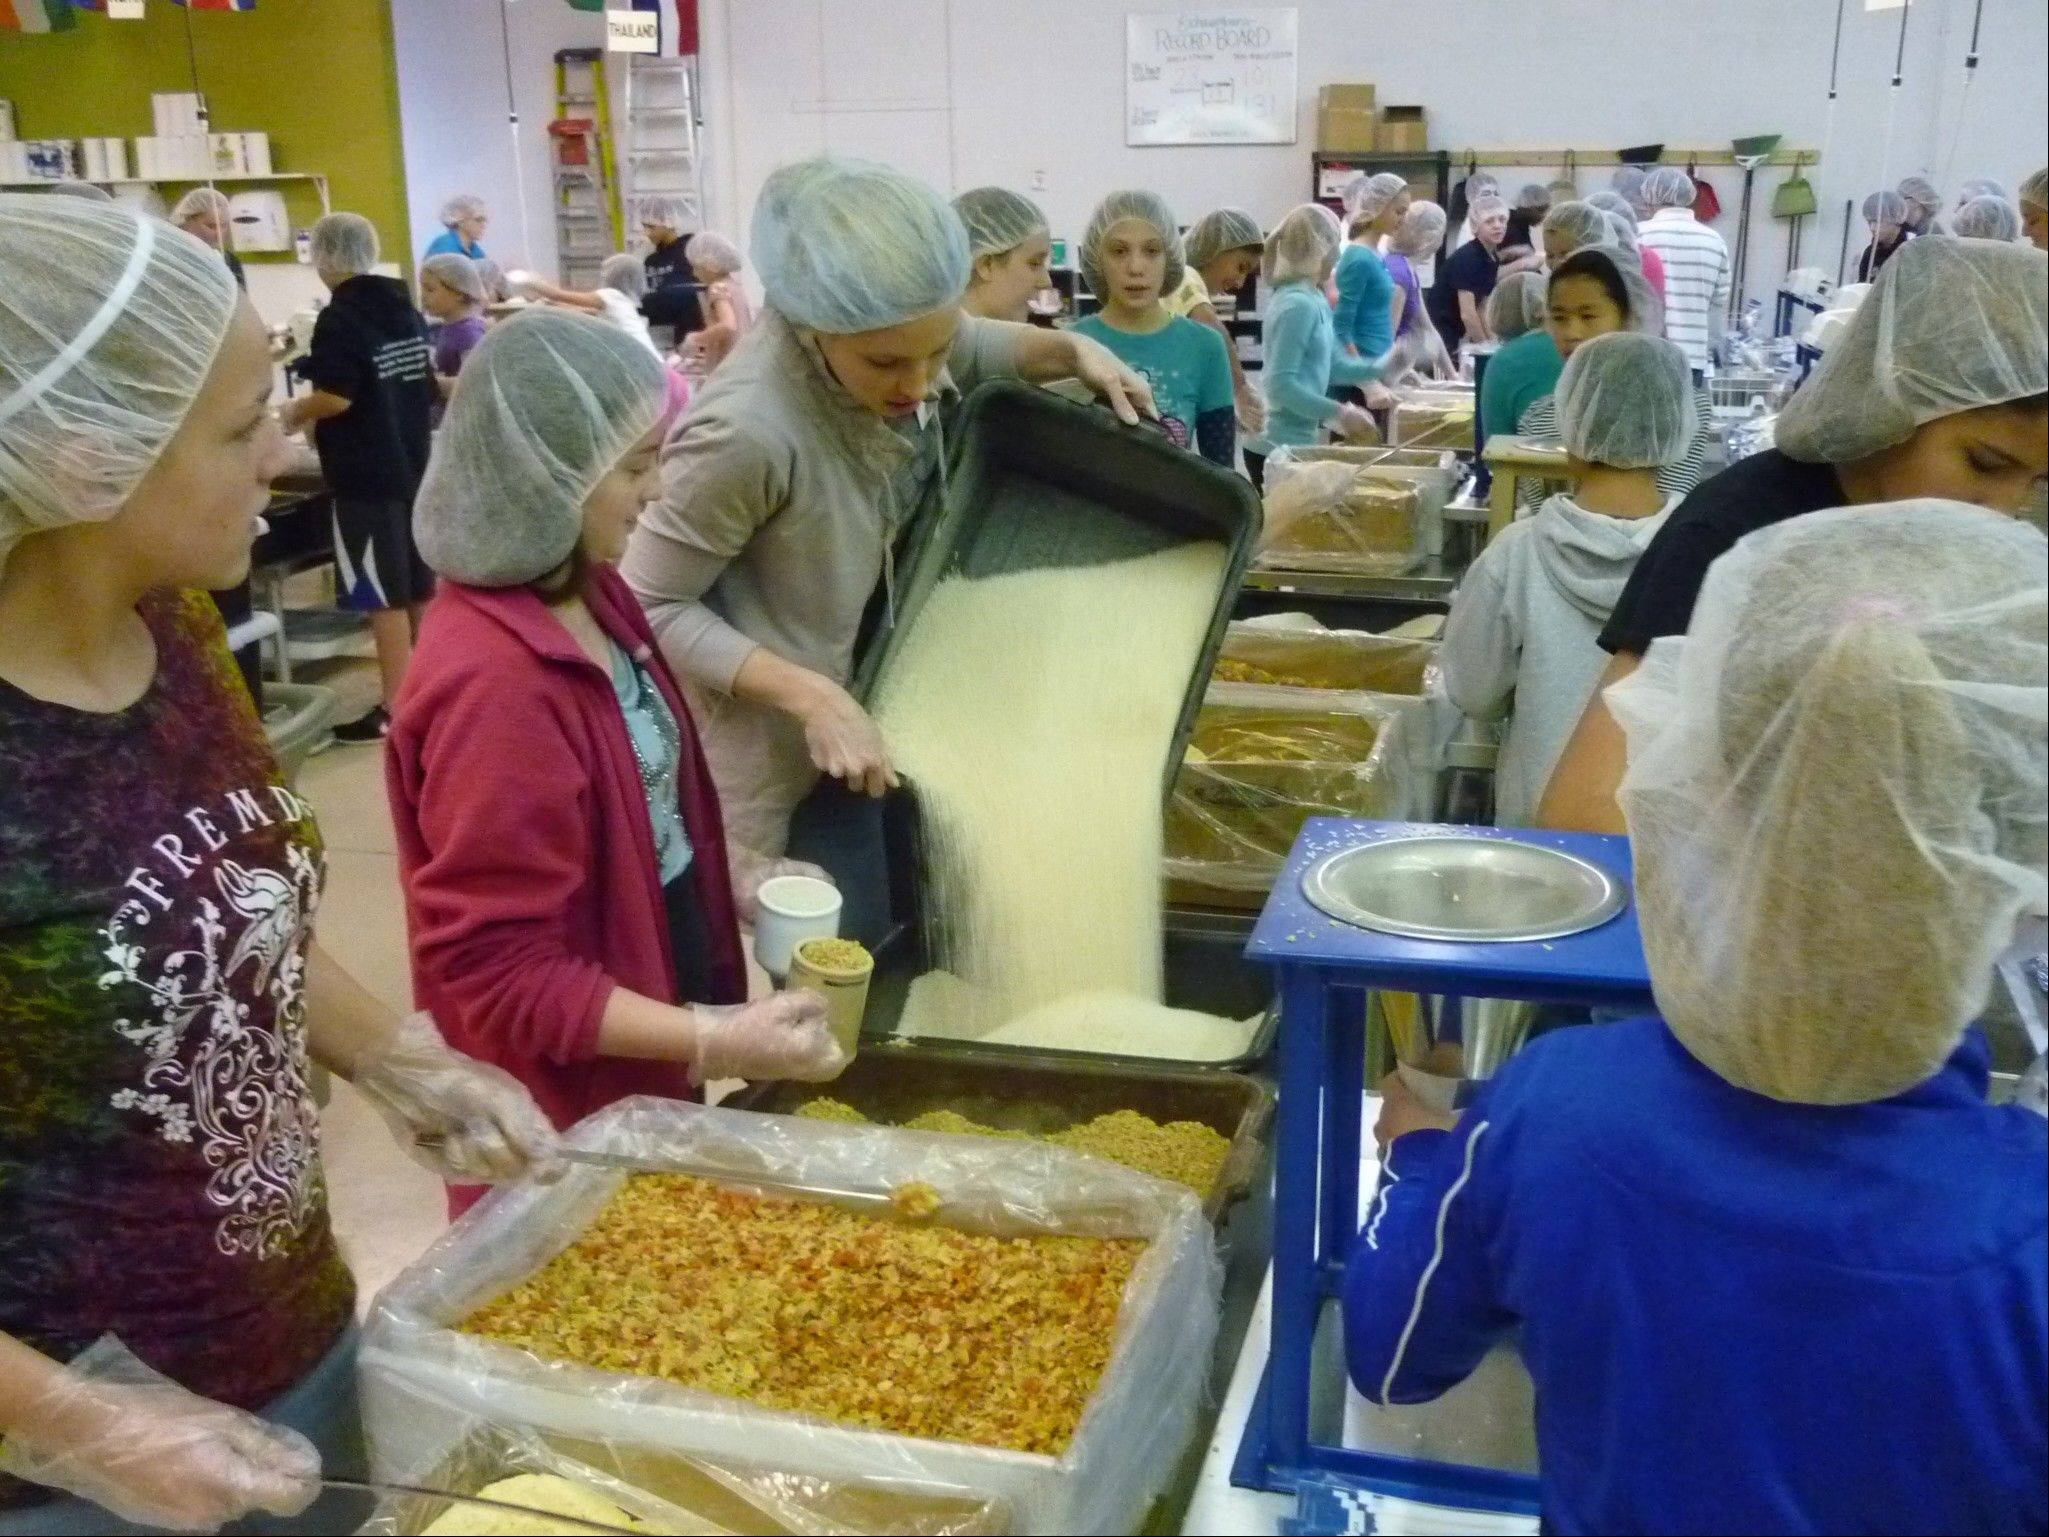 More than 200 students, teachers and parents from Immanuel Lutheran School in Palatine, prepared 41,040 meals for hungry children in Swaziland, Africa and Colombia, South America, through Feed My Starving Children.